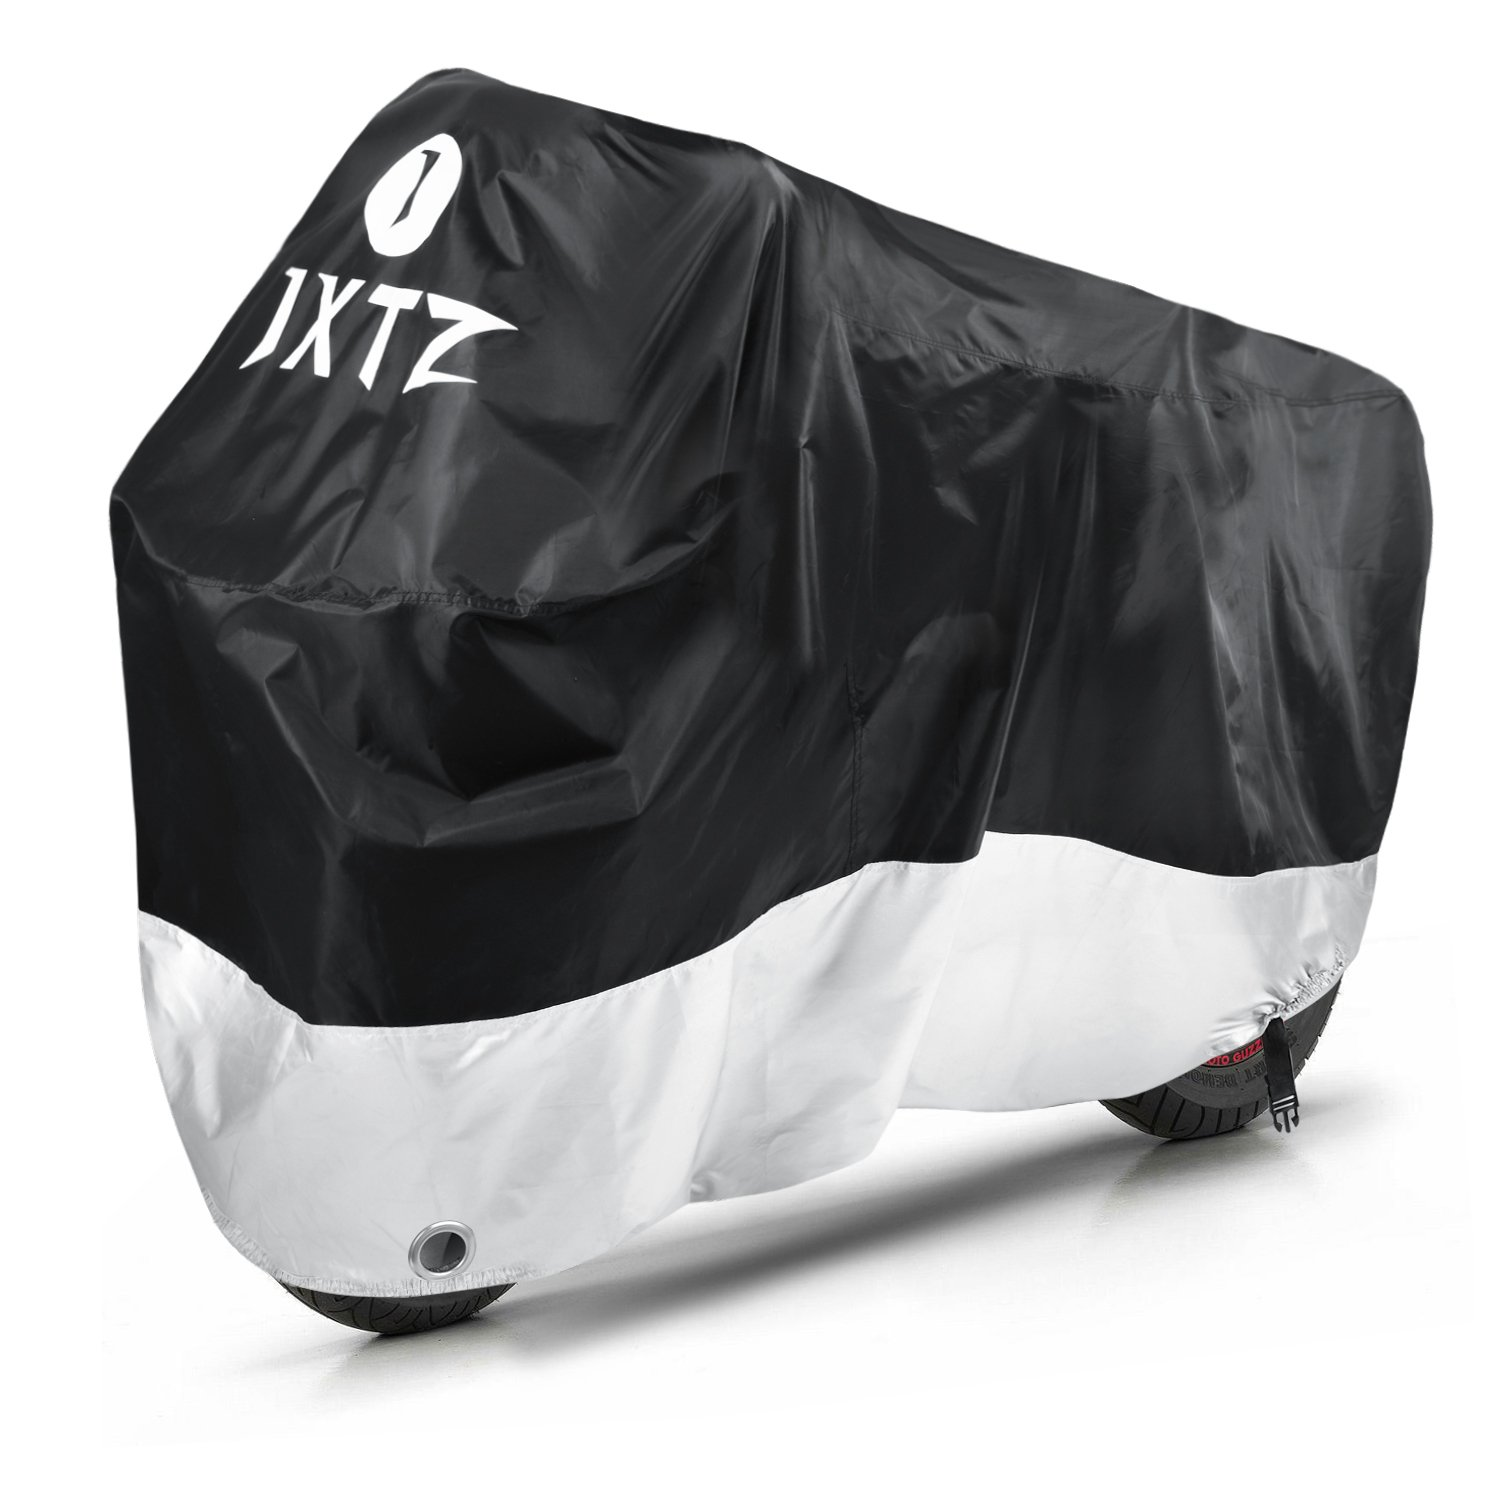 JXTZ Motorcycle Cover, Motorbike Cover, 210D Oxford Fabric, Anti Rain Dust Sun and Waterproof, Indoor Outdoor Protection with Lock-Holes, Safety Buckle, Carry Bag (Black & Silver) Oria